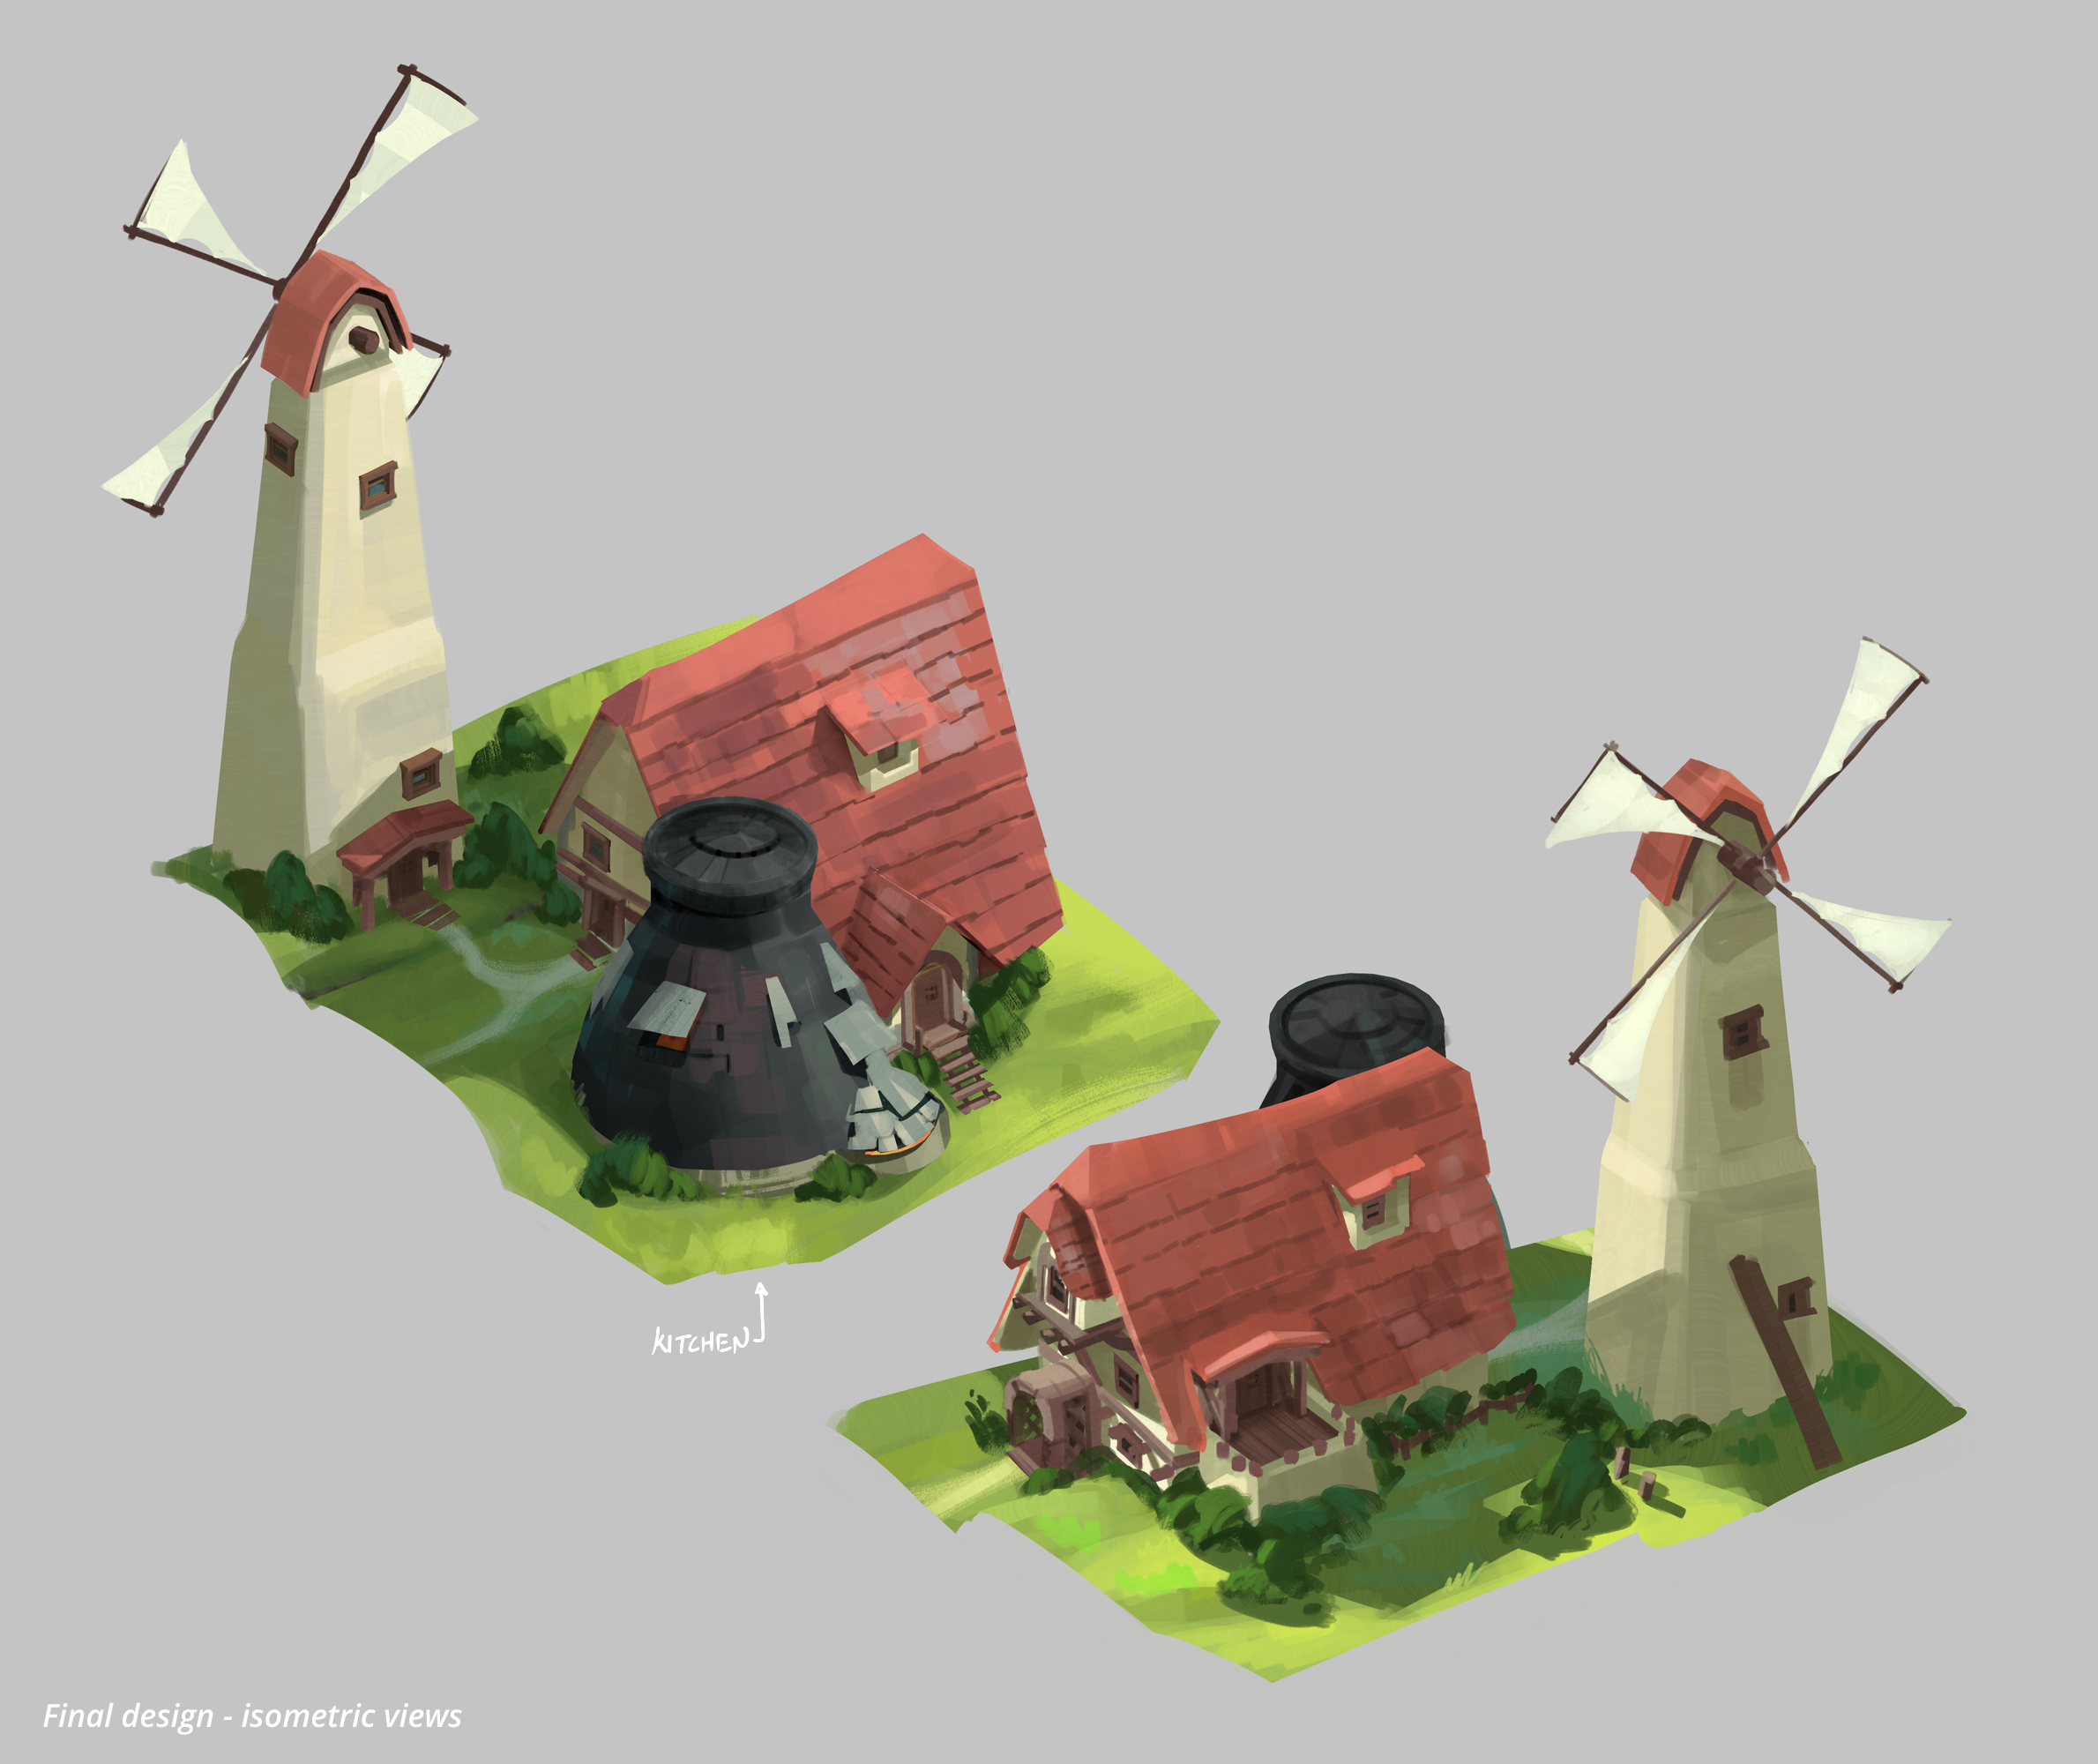 Concept Exercise - Link's House Orthographic